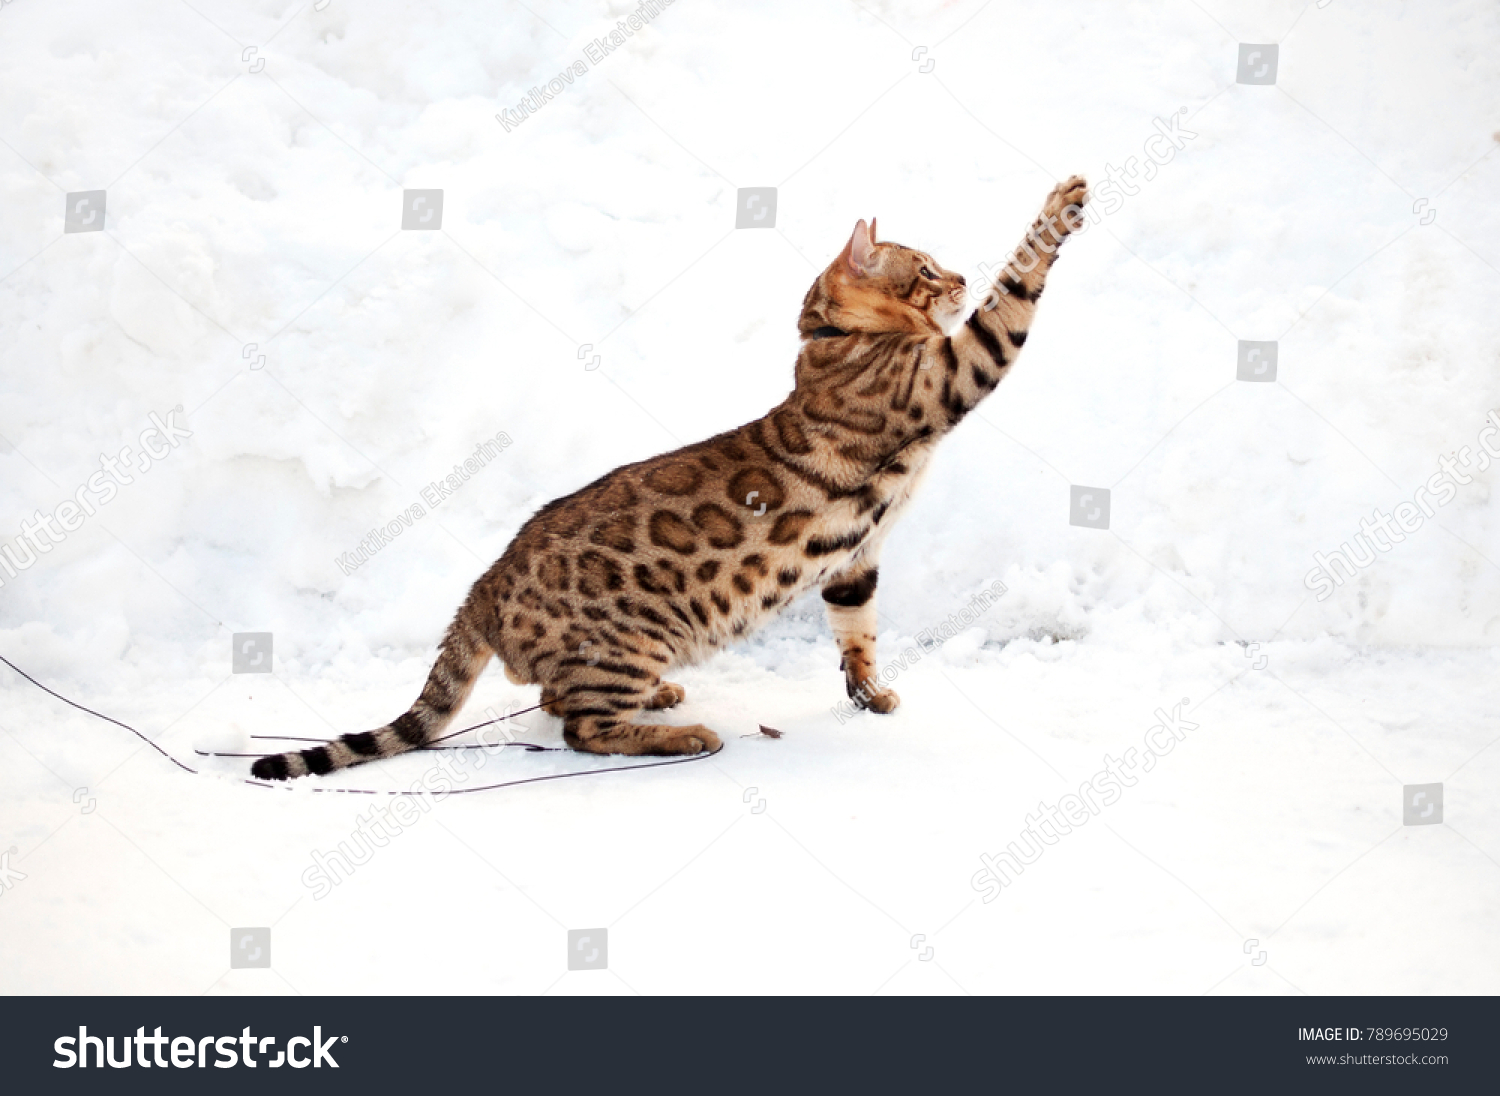 Adult Bengal Cat On Snow Background Stock Photo 789695029 ...